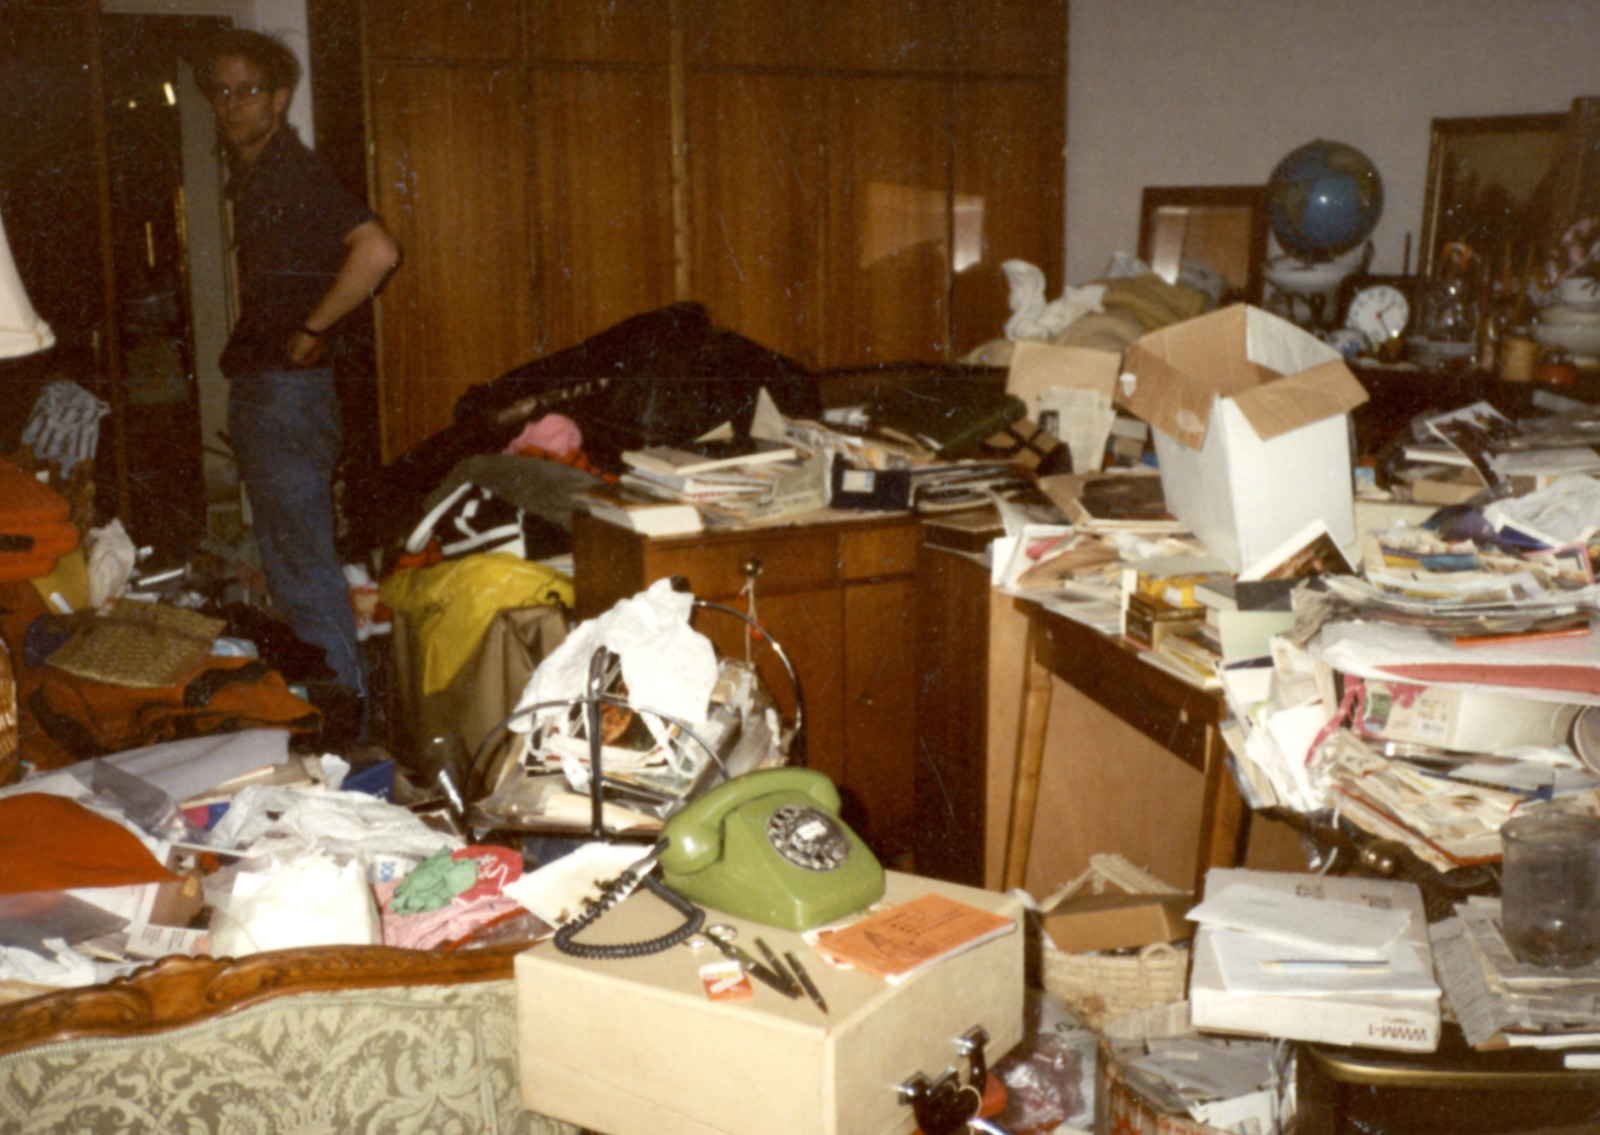 compulsive hoarding It is unclear at this point whether compulsive hoarding is part of ocd or   encourage hoarders to seek treatment and help them receive it.